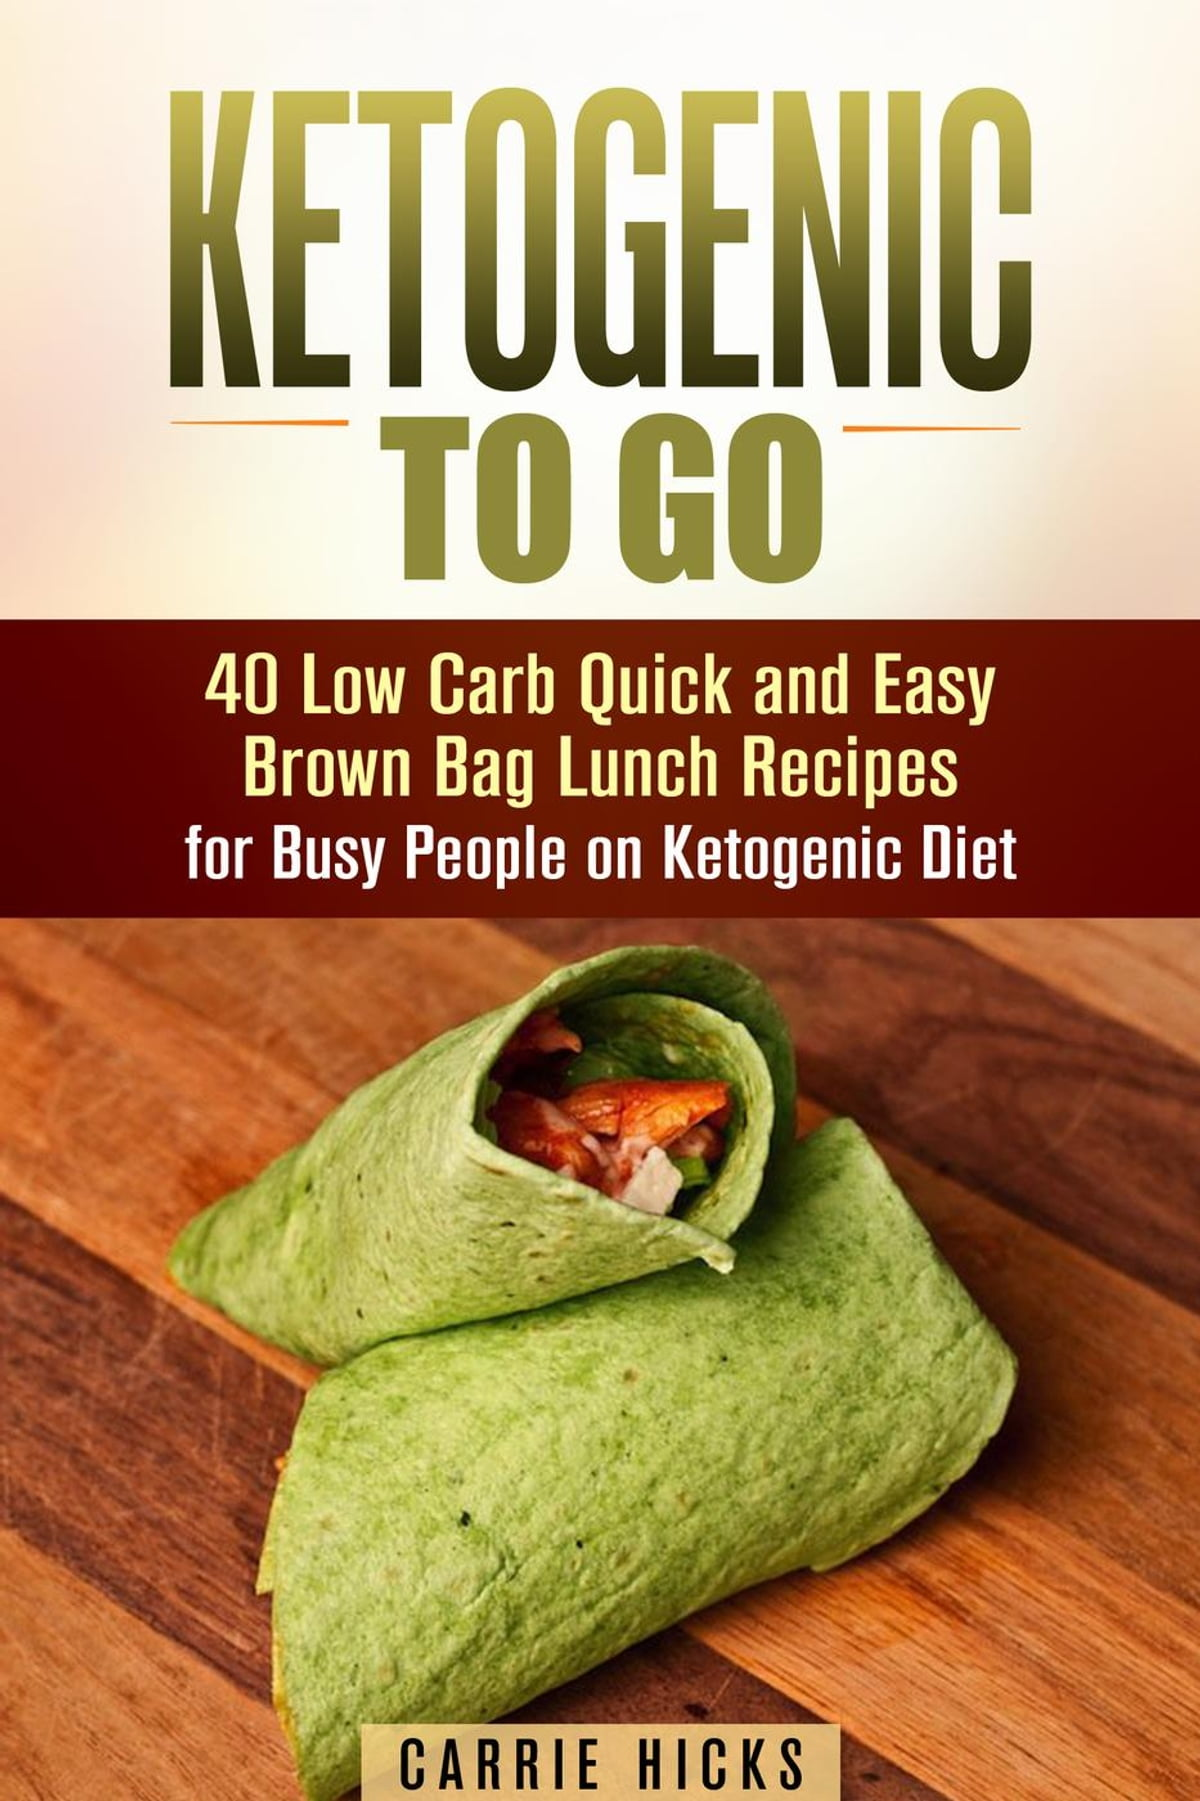 Affordable Easy Brown Bag Lunch Recipes Forbusy People On Ketogenic Diet Ebook By Carrie Hicks Kobo Ketogenic To Low Carb Quick Easy Brown Bag Lunch Recipes Ketogenic To Low Carb Quick nice food Easy Lunch Recipes